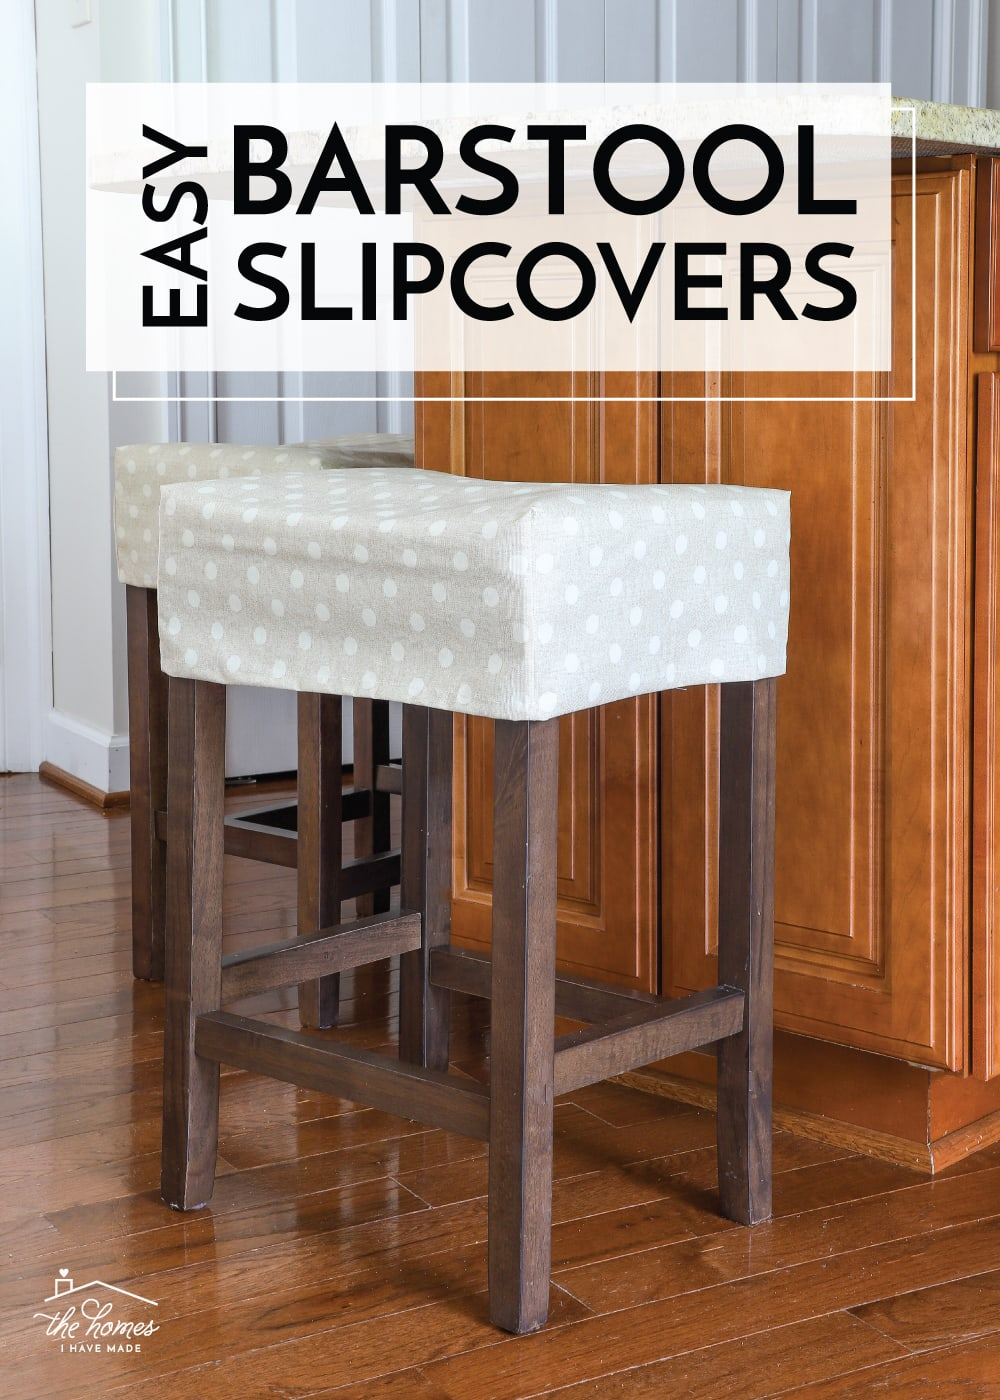 Barstool Slipcovers